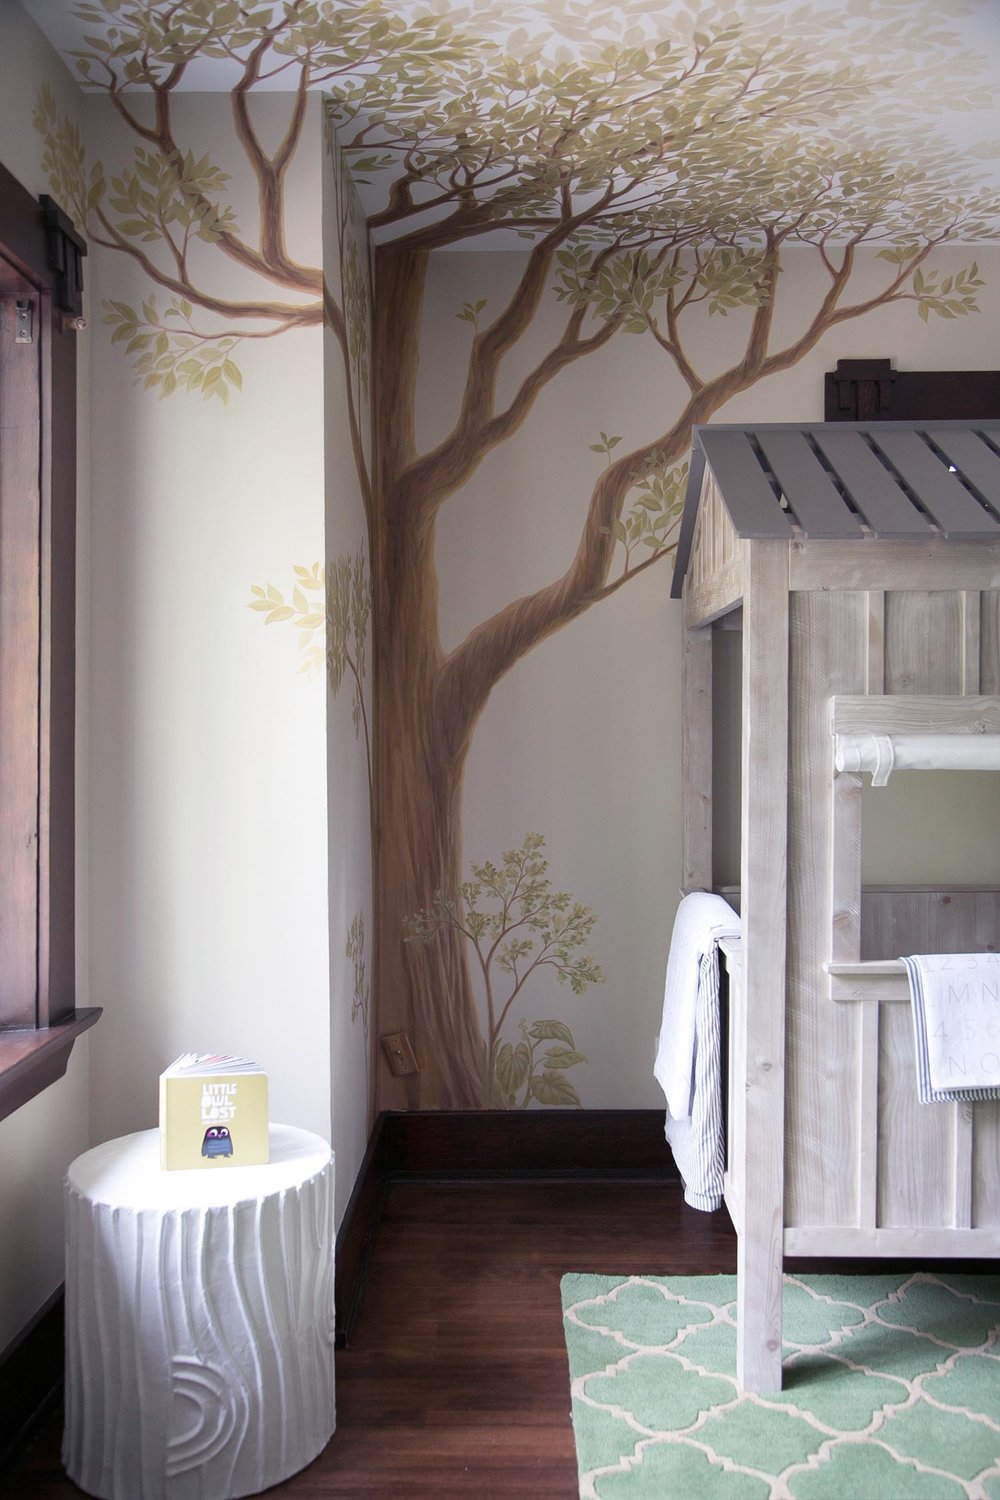 Amazing tree mural in boys room